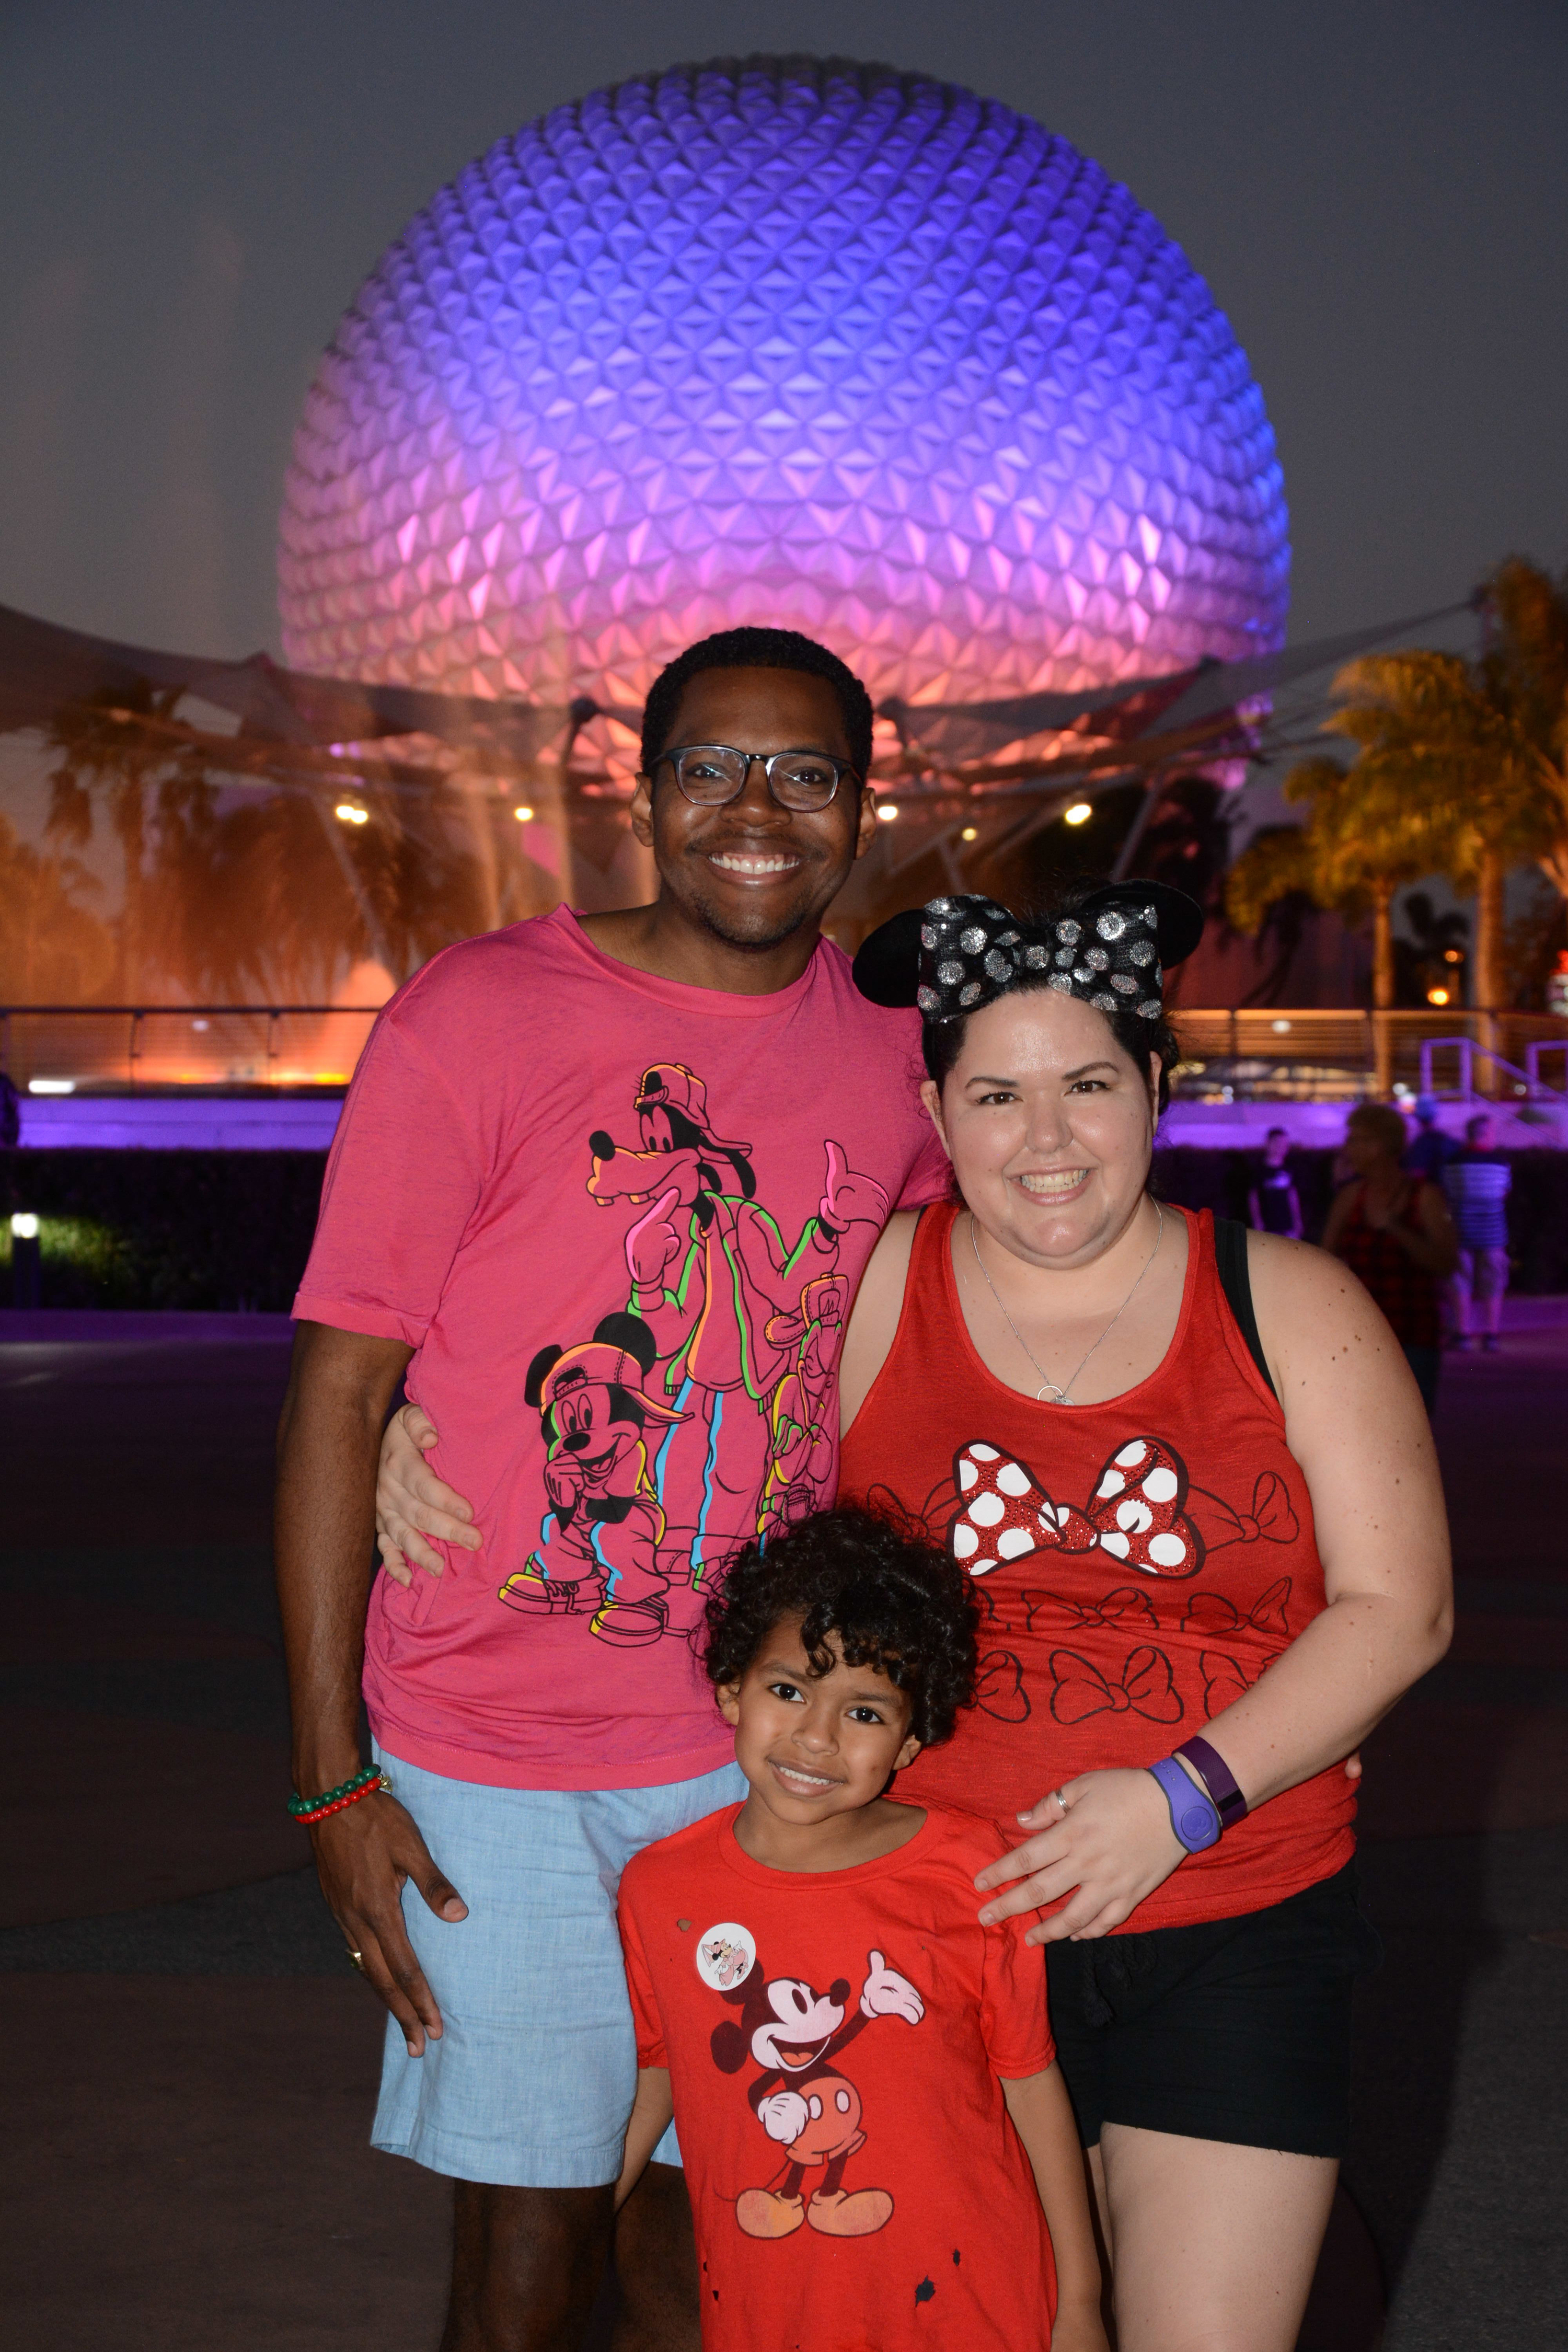 Dad, Mom, and son standing in front of Epcot at night, in disney shirts.